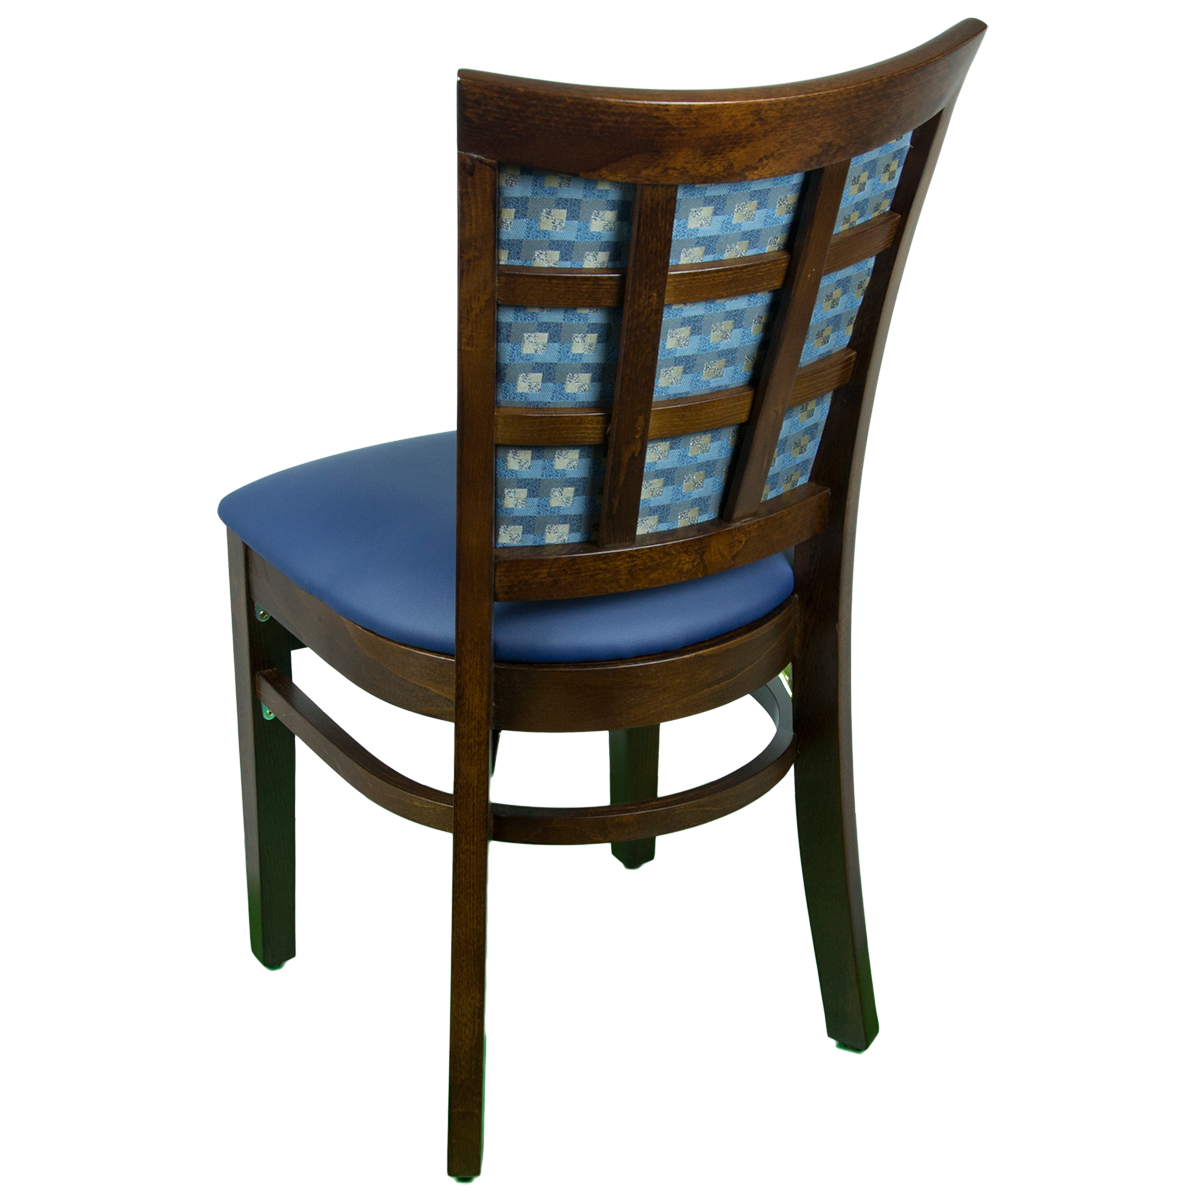 window chair furniture. Wood Window Back Chair Window Chair Furniture G